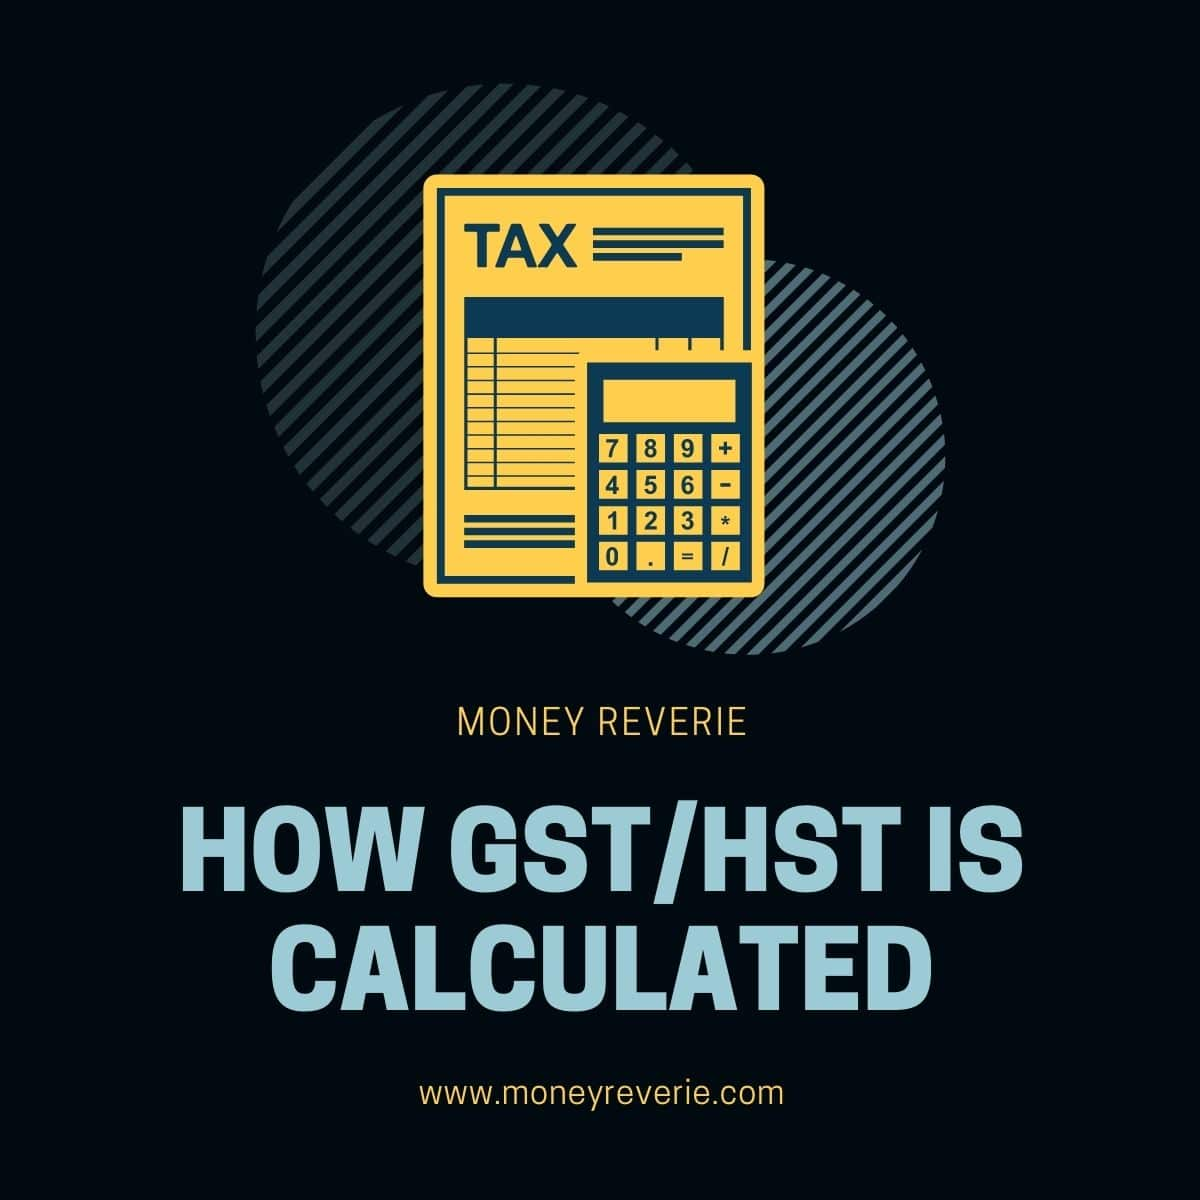 How GST/HST Is Calculated